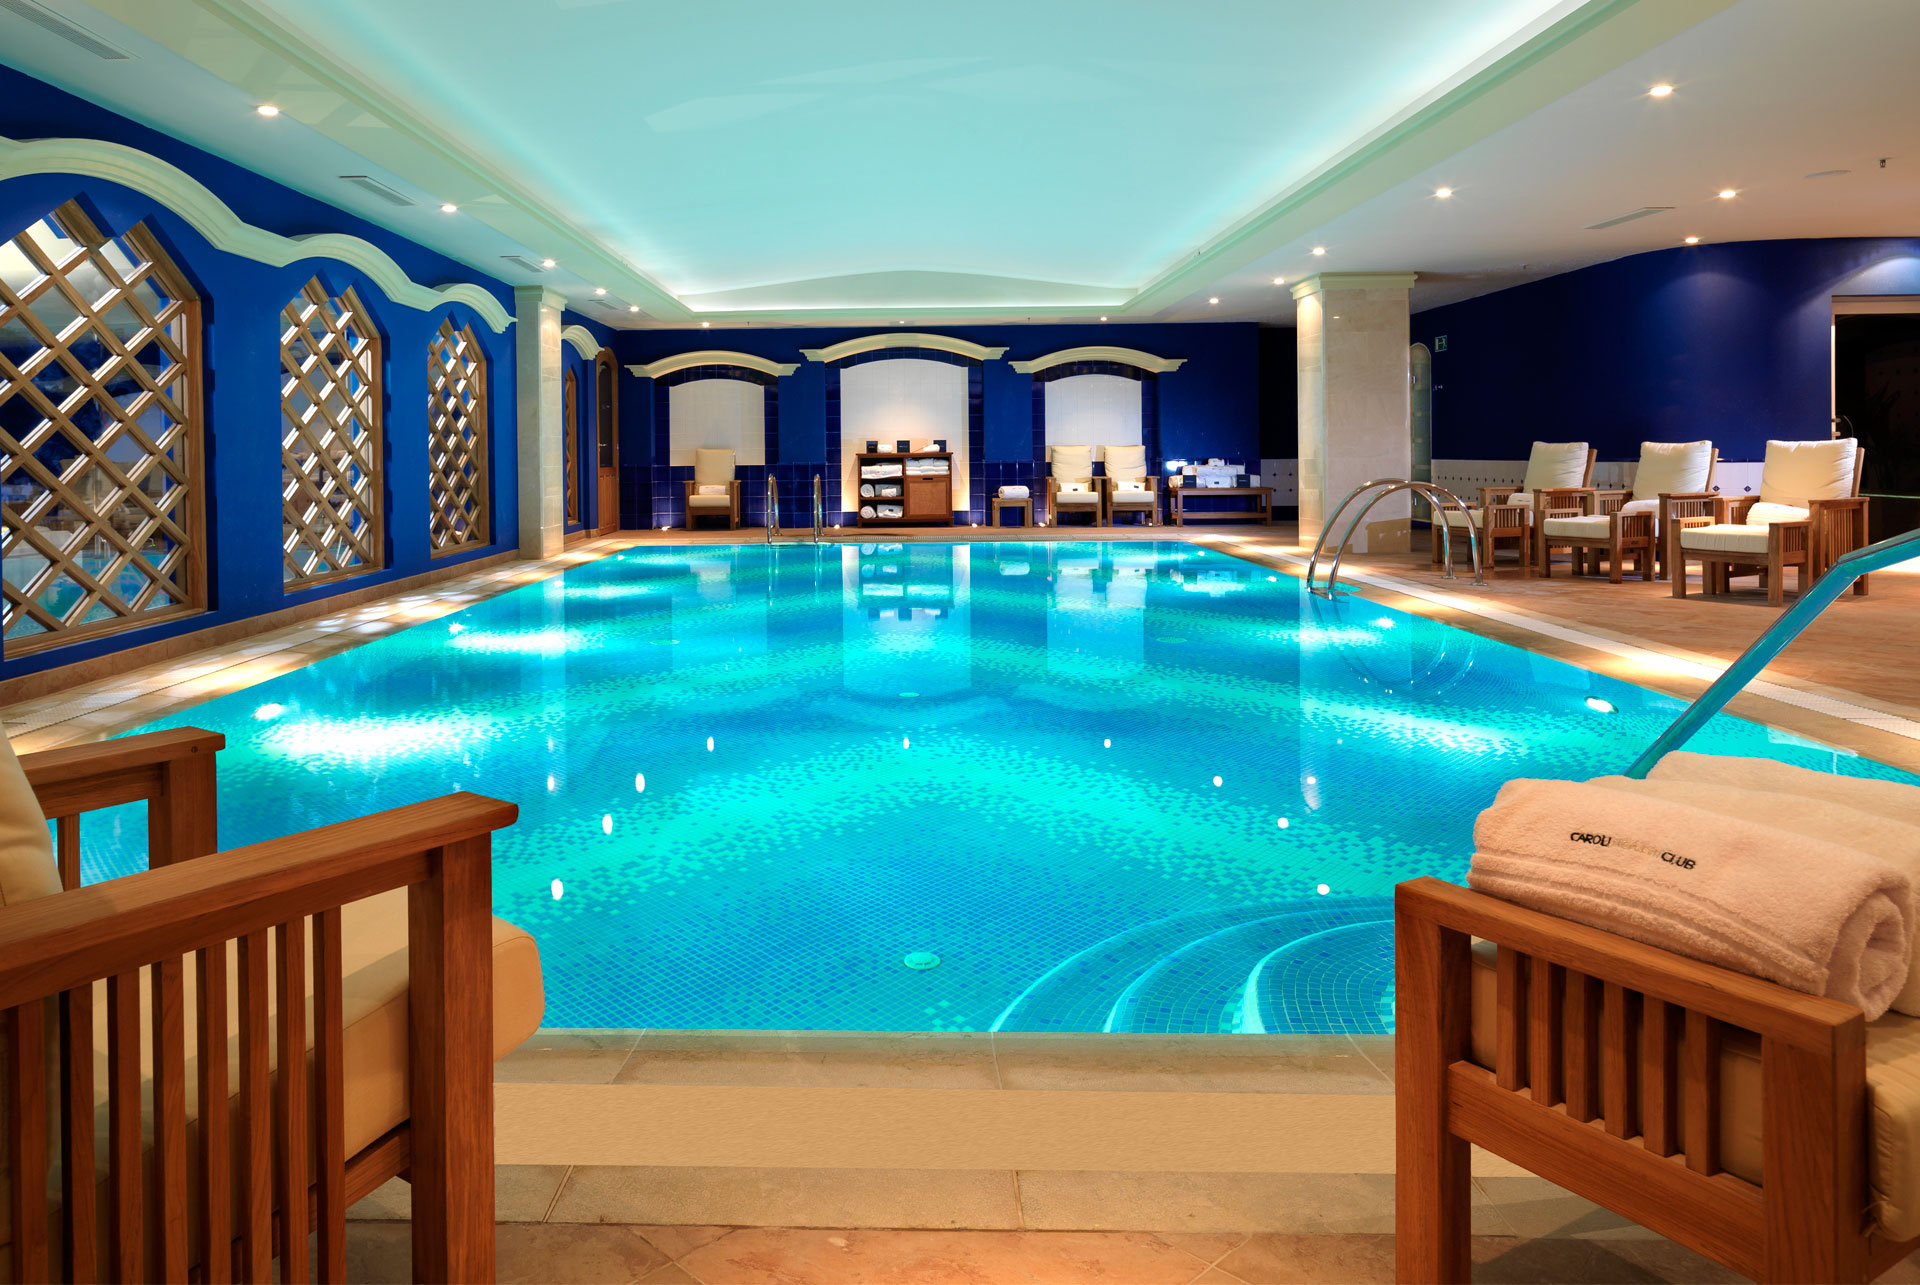 Hotel En Valencia Con Piscina Caroli Health Club Wellness Is Personal